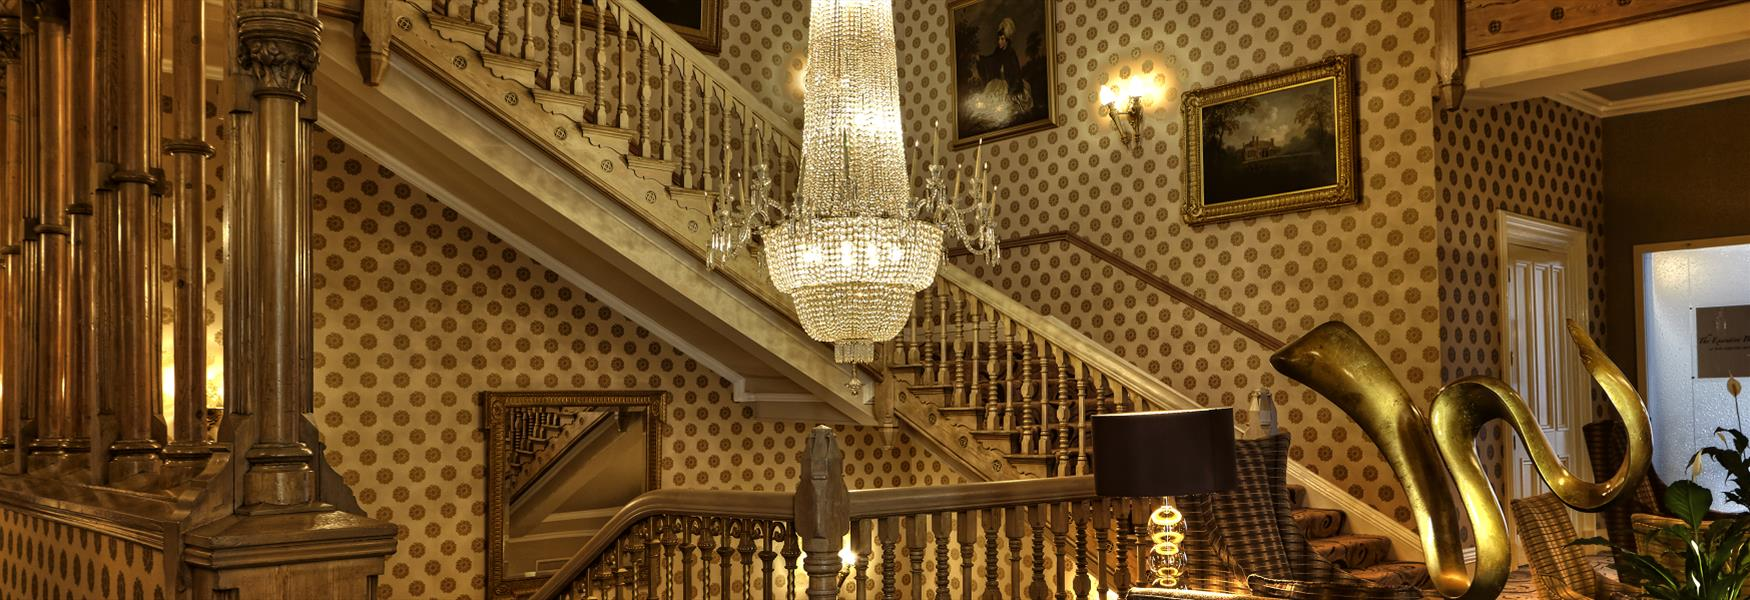 Luxury Hotels in Cheshire